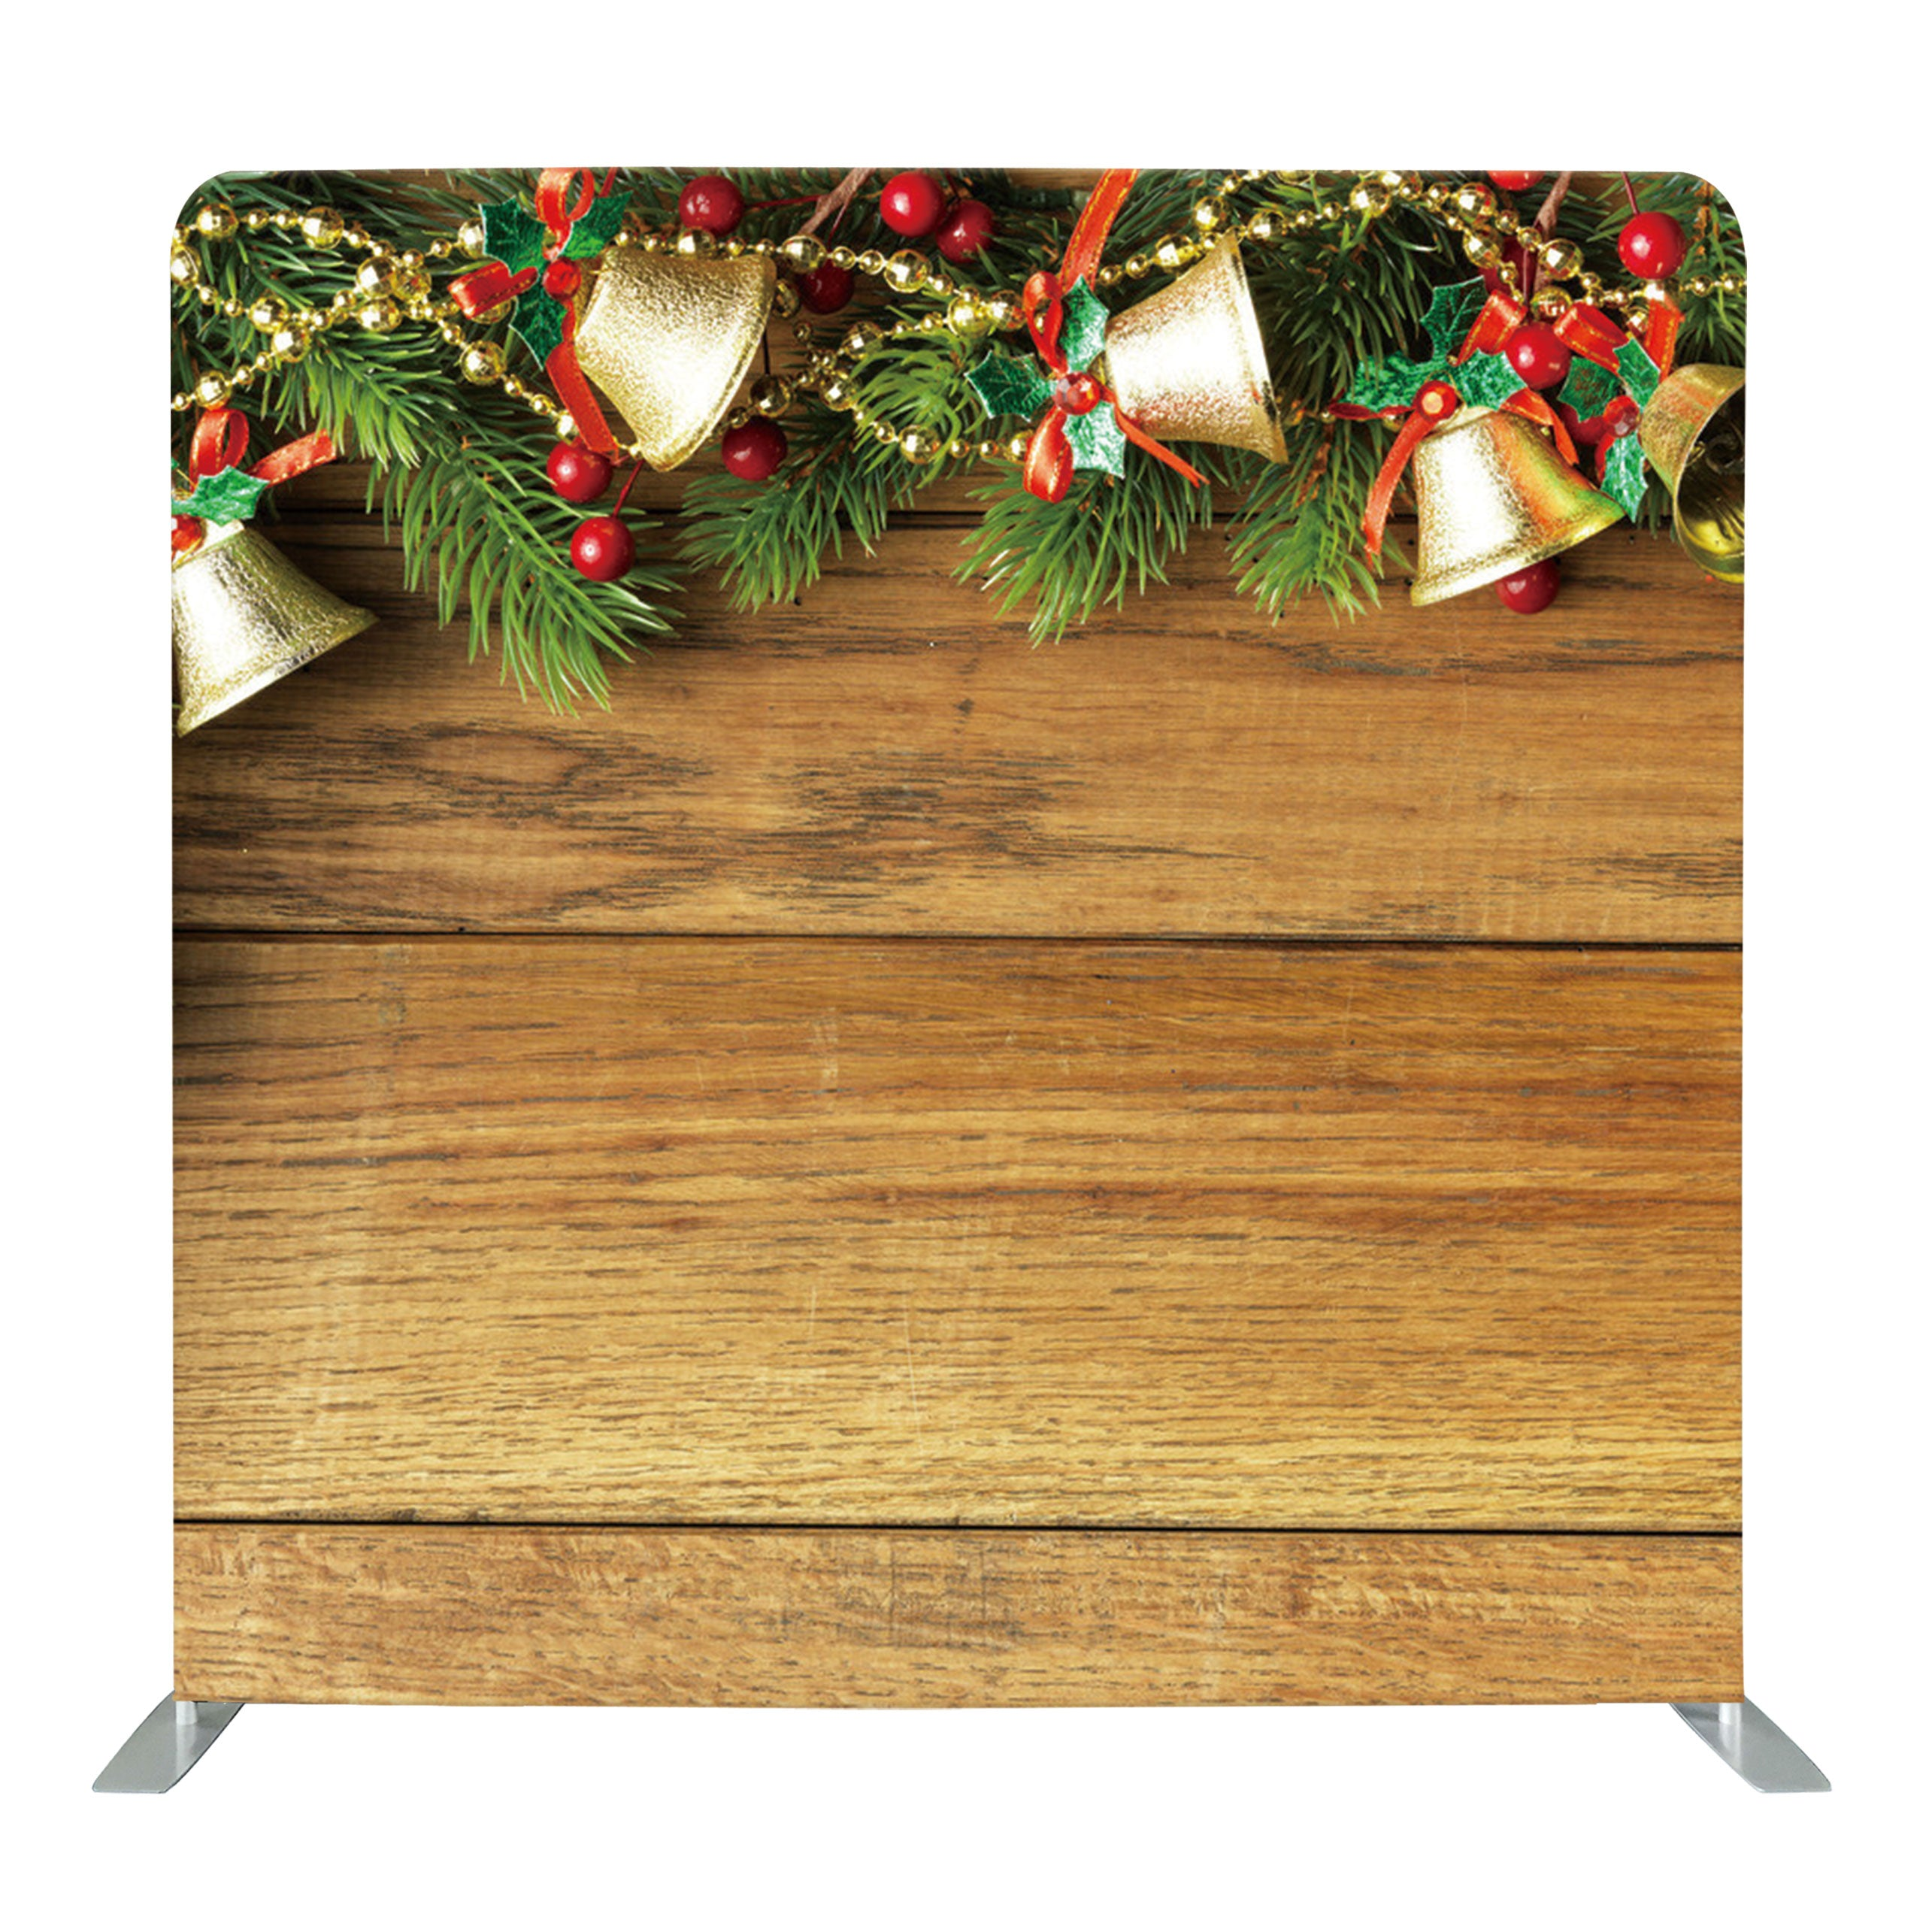 Wood with Festive Christmas Decors Tension Fabric Backdrop